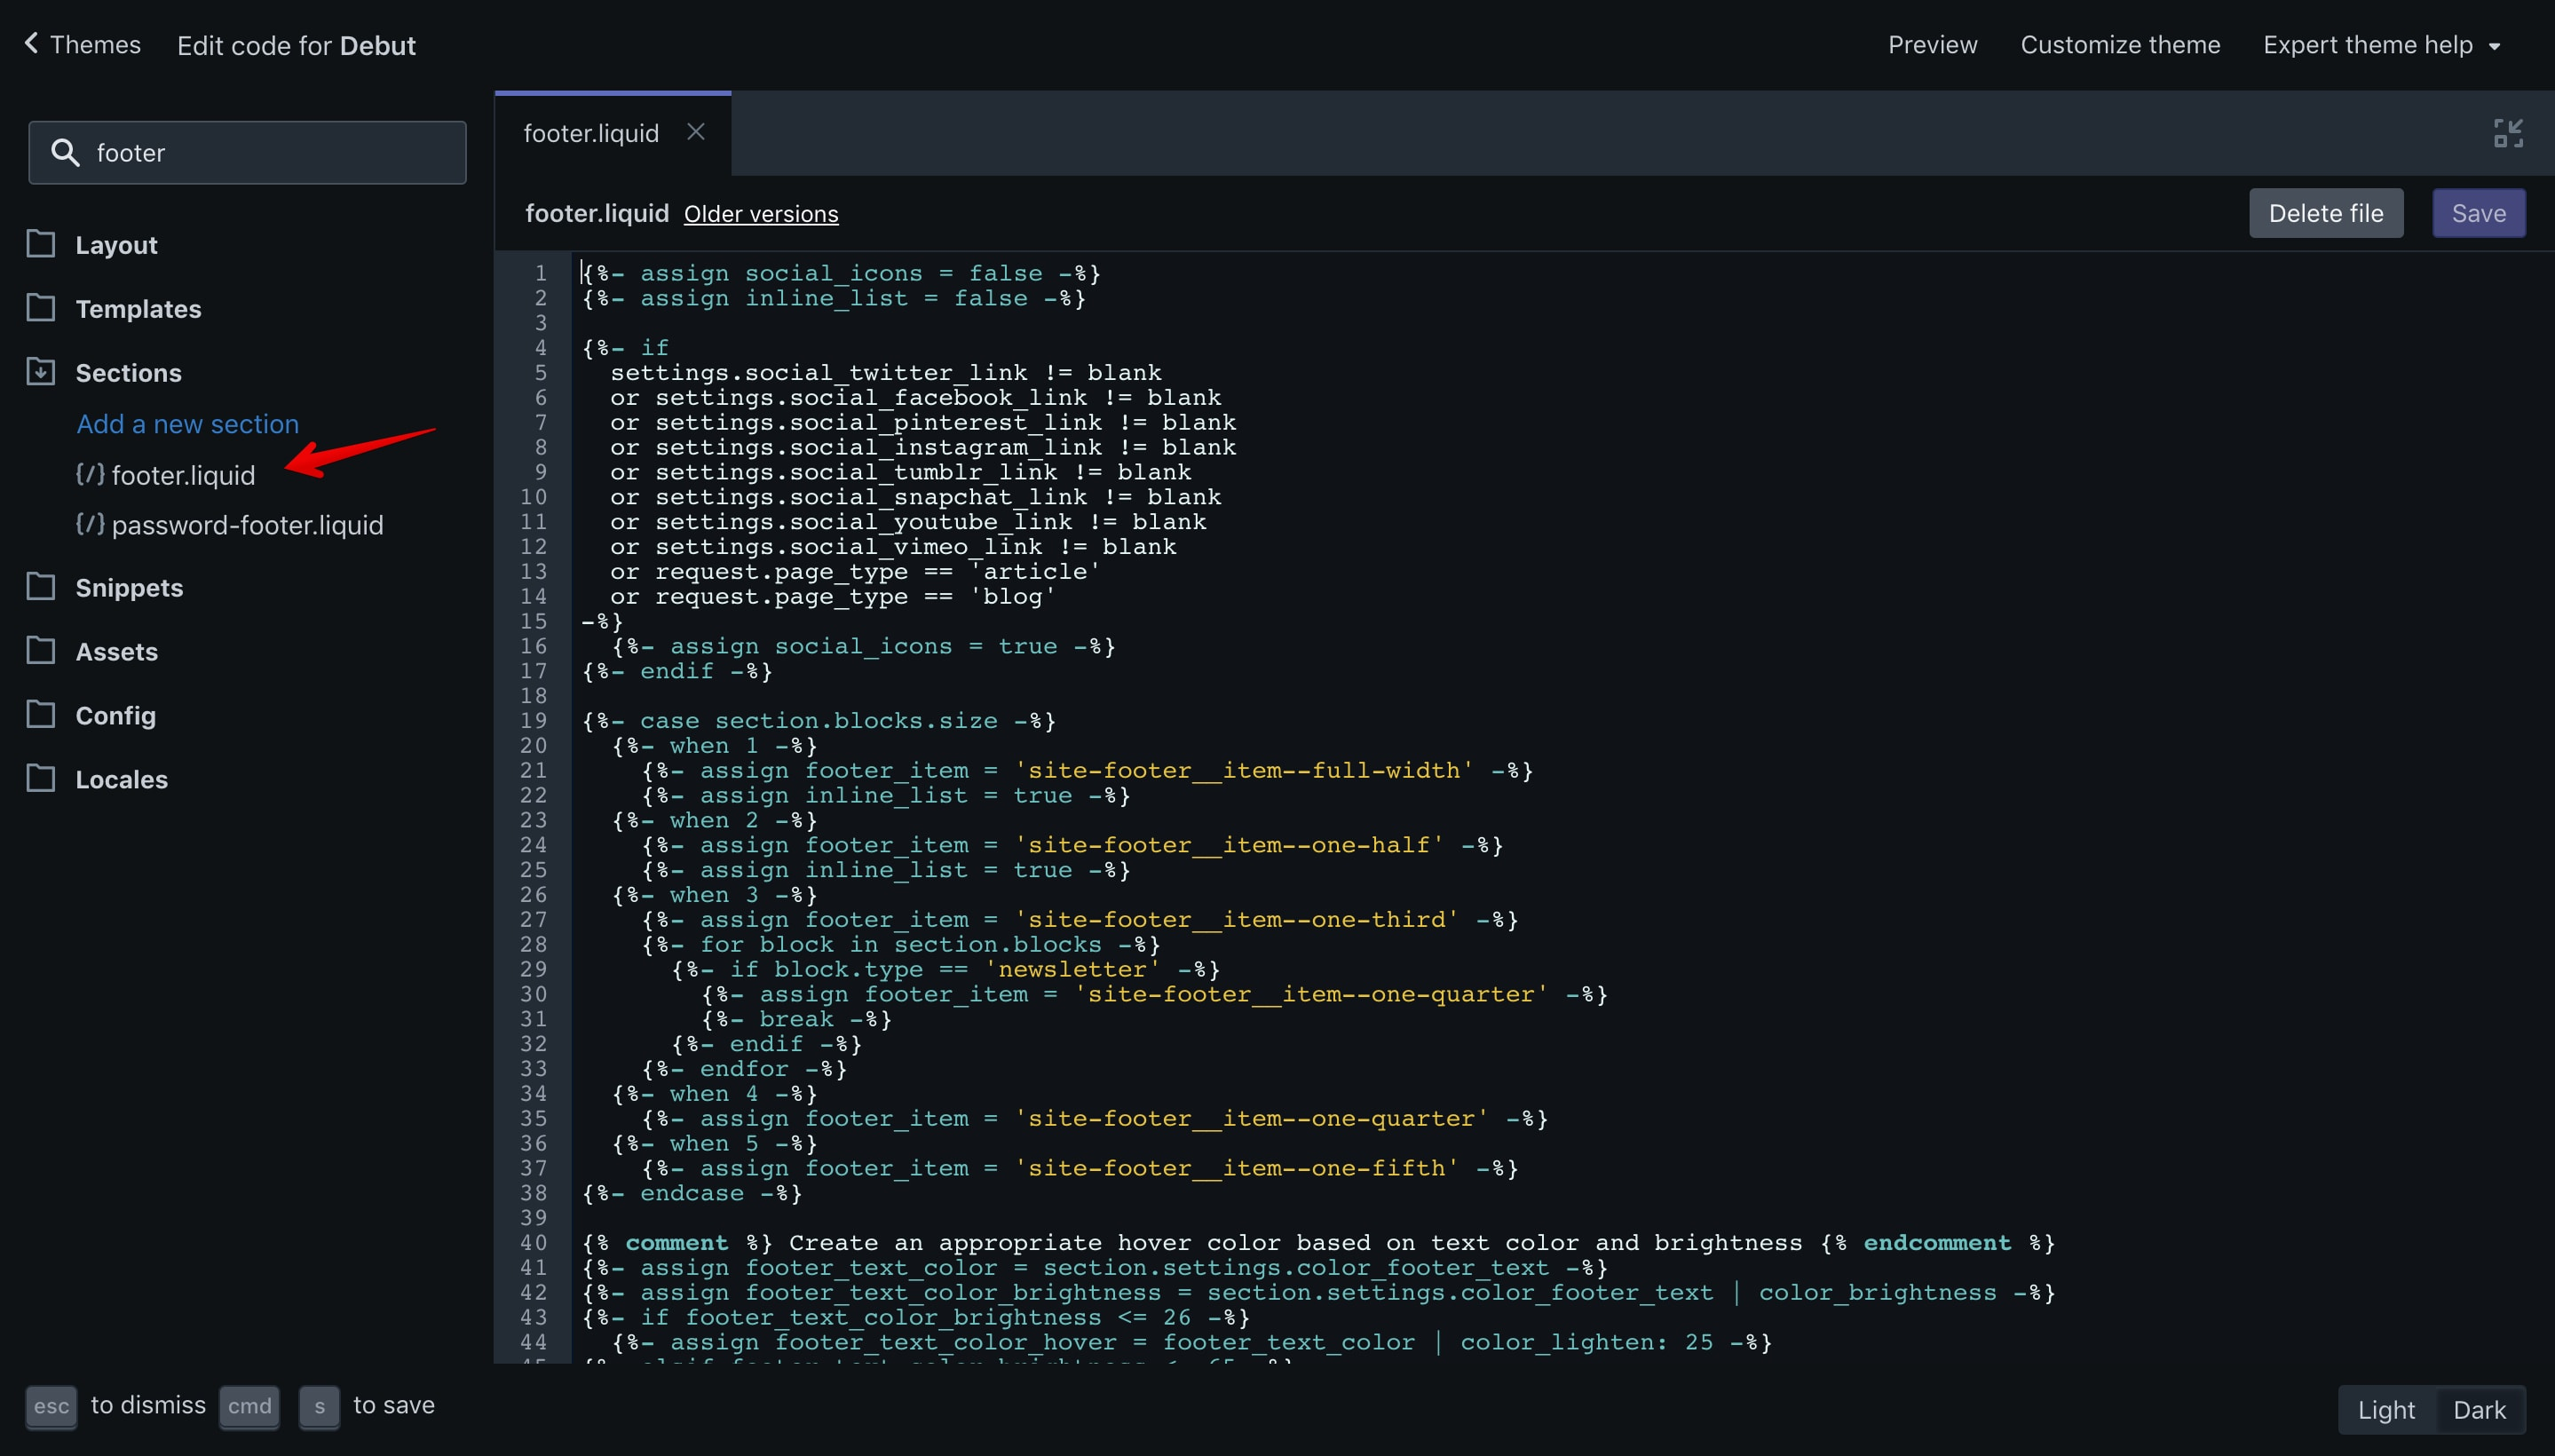 """Debut theme """"footer.liquid"""" file opened in the code editor."""